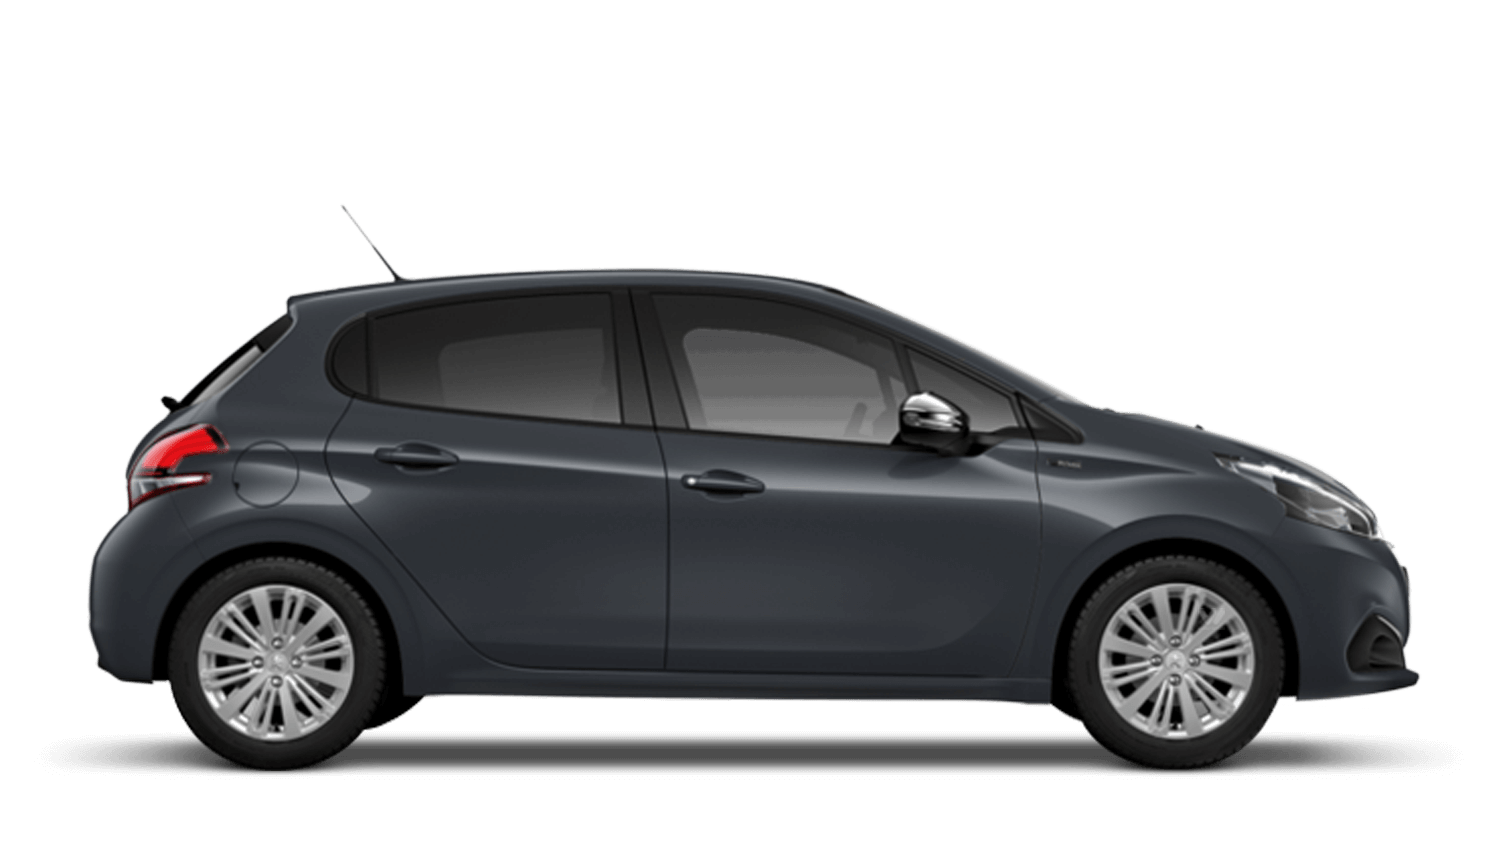 Hurricane Grey Peugeot 208